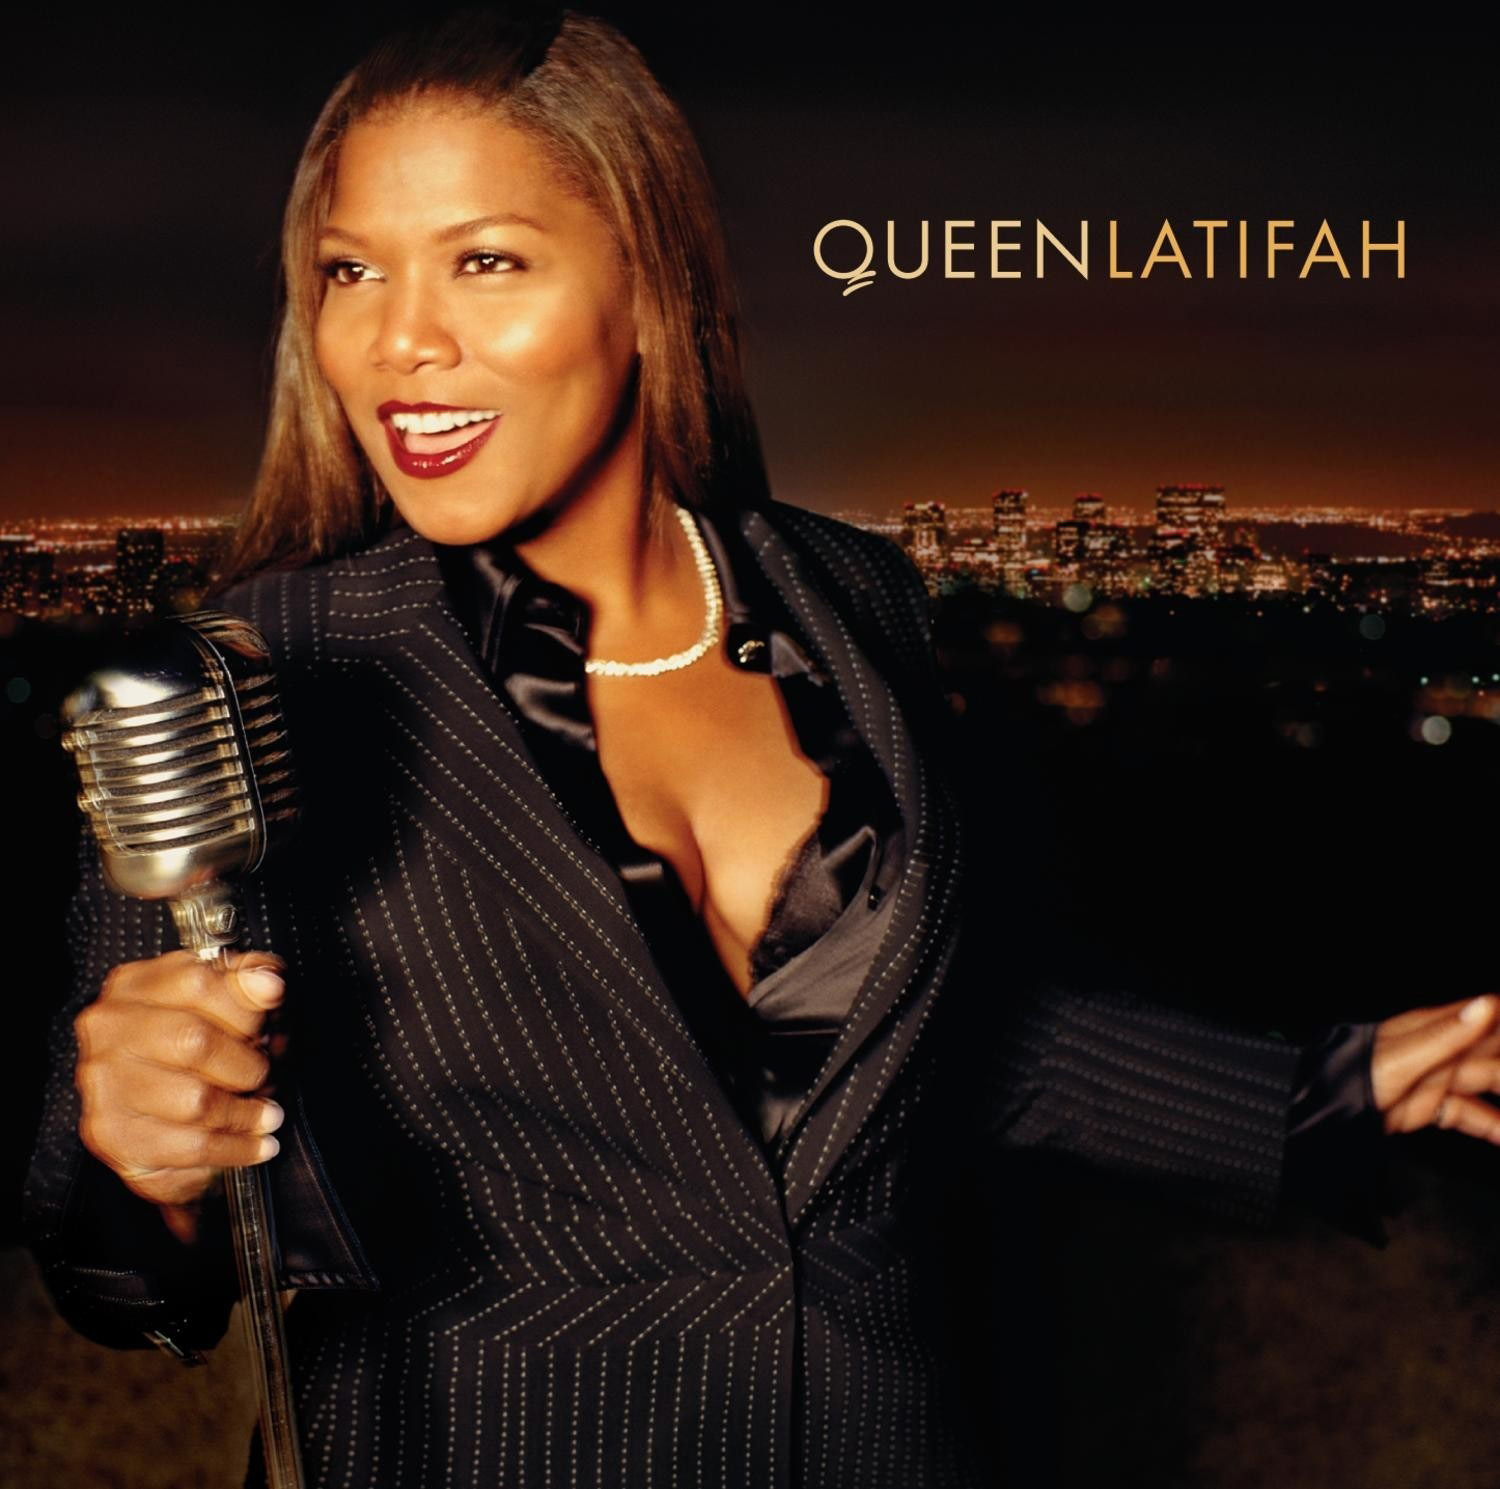 Hot Queen Latifah nude photos 2019